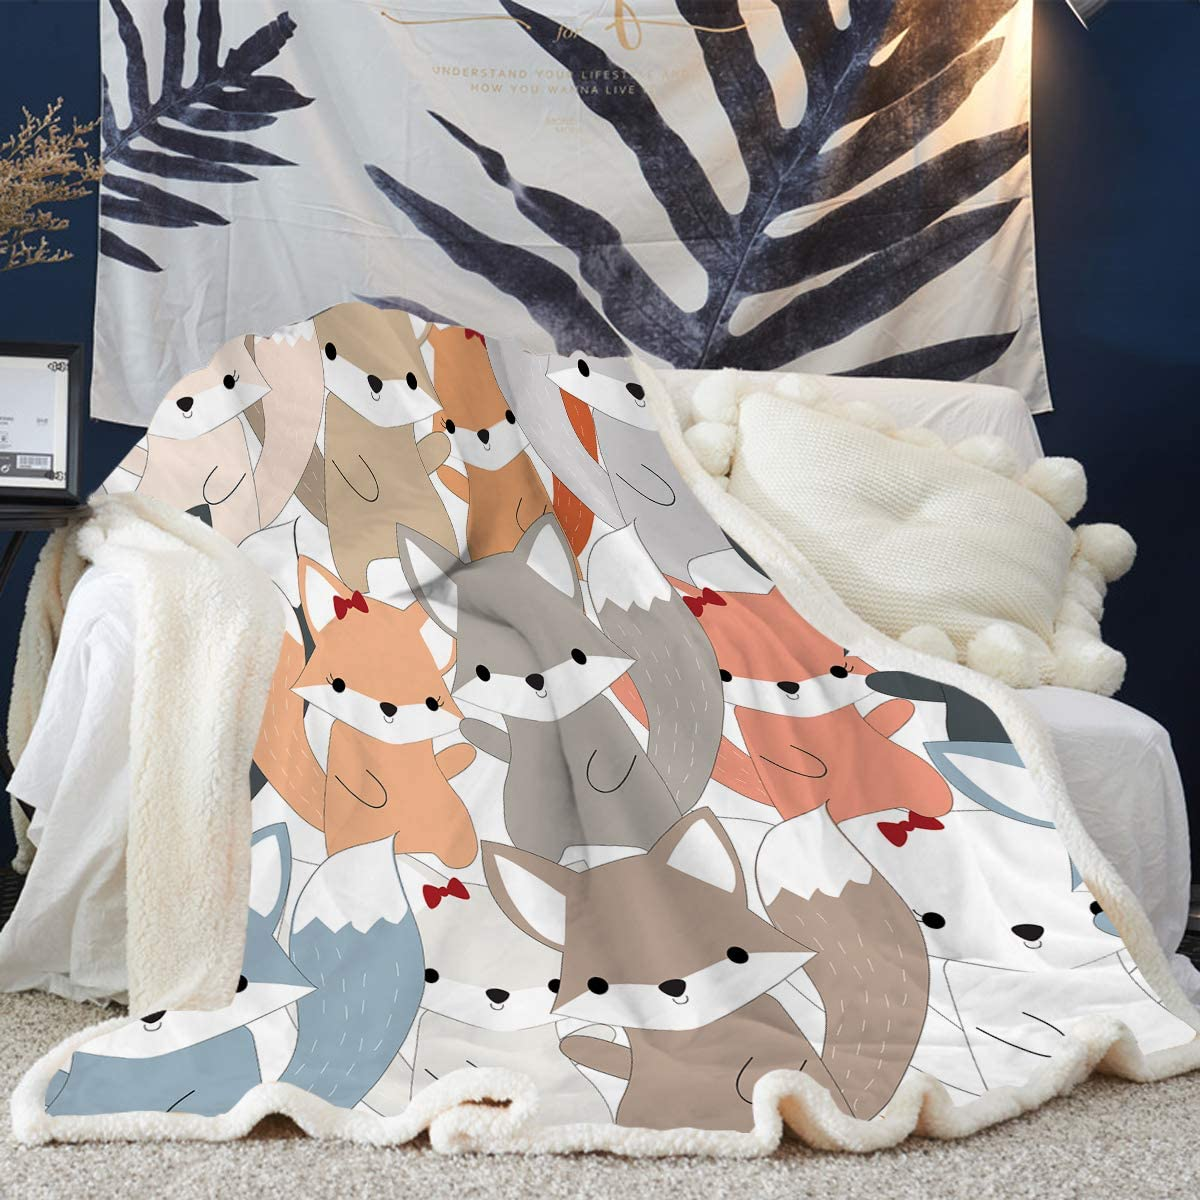 ARIGHTEX Cute Horse Blanket for Bed and Office Kids Girls Pretty Ponies Throw Blanket Cartoon Farm Animals Blanket 50 x 60 Inches